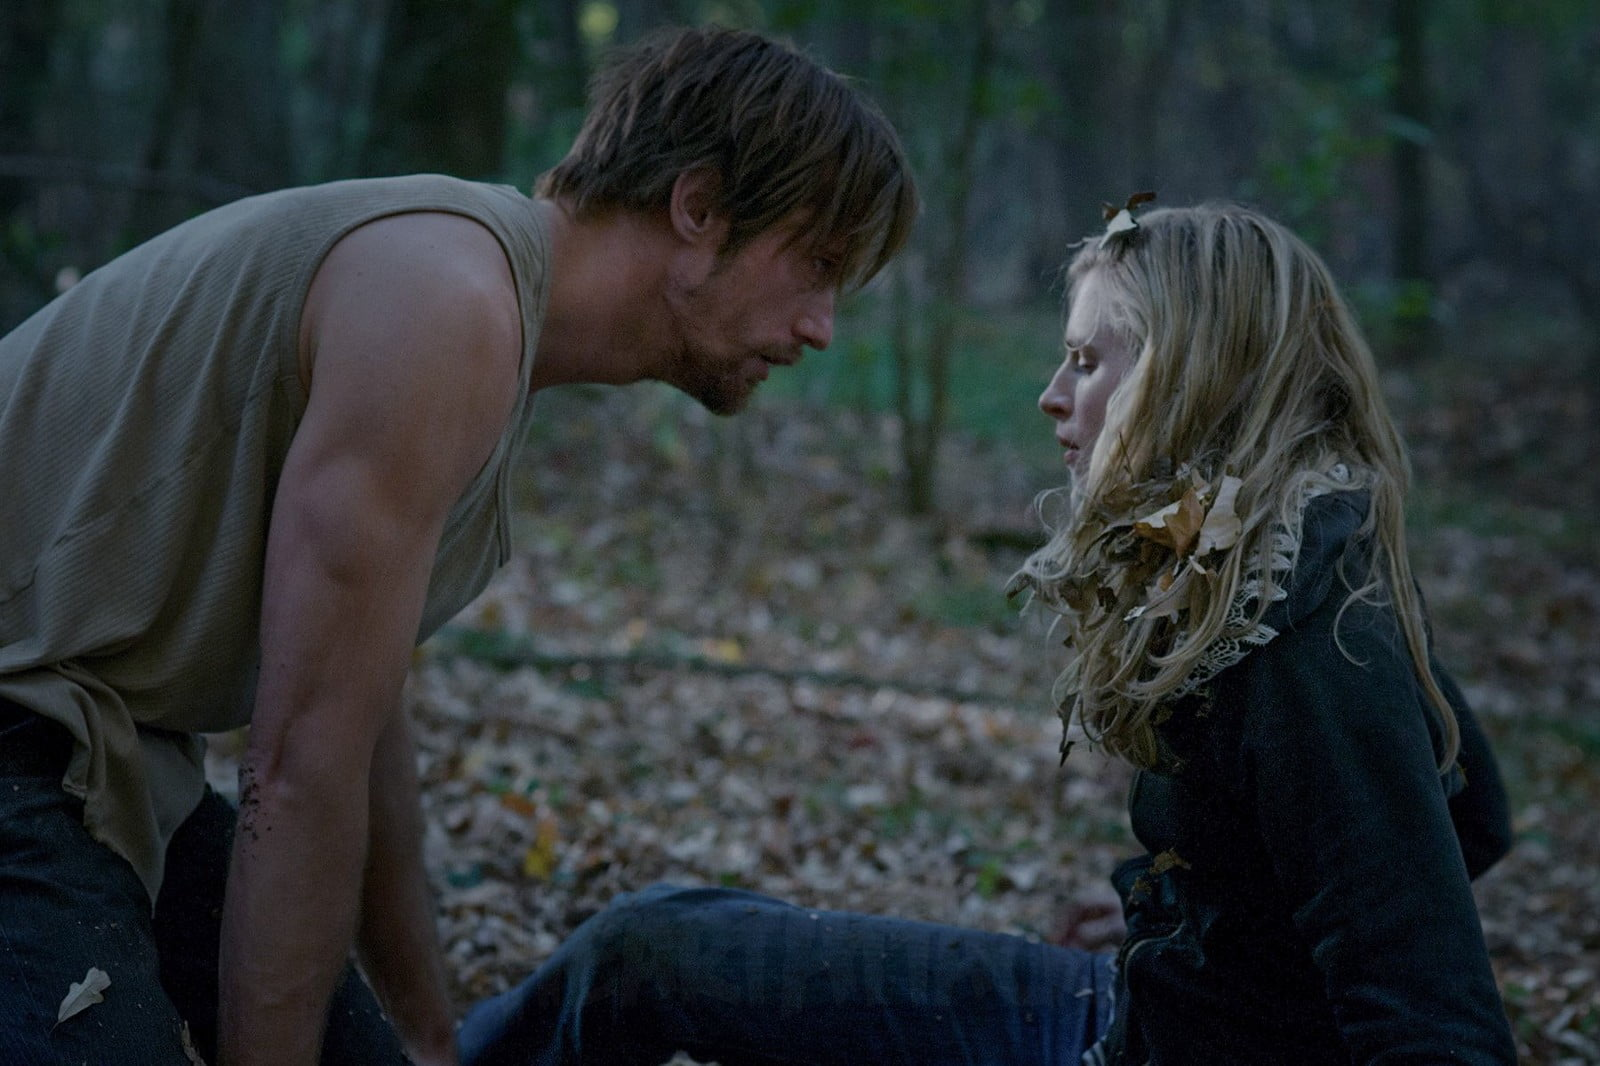 Britt Marling and Alexander Skarsgård in The East